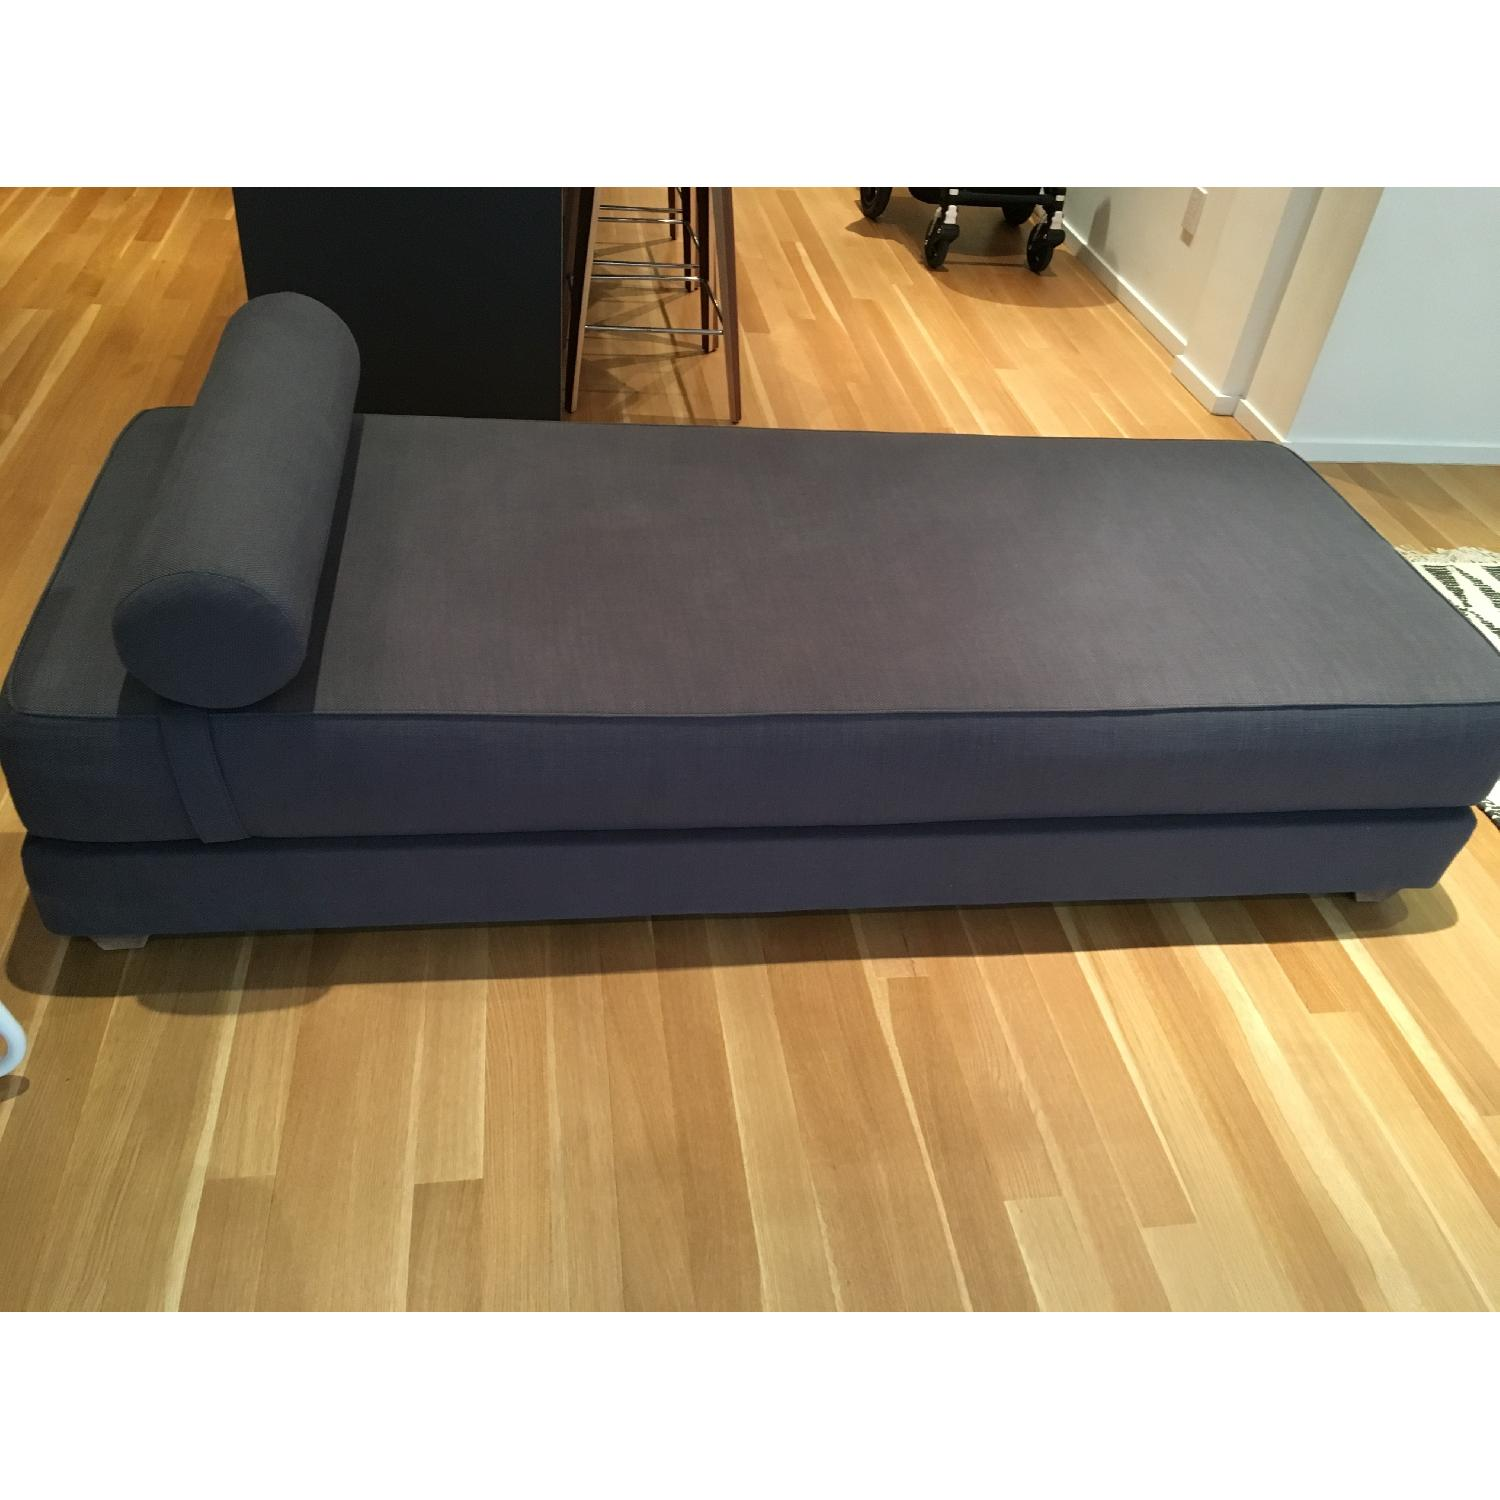 CB2 Lubi Sleeper Daybed - image-7